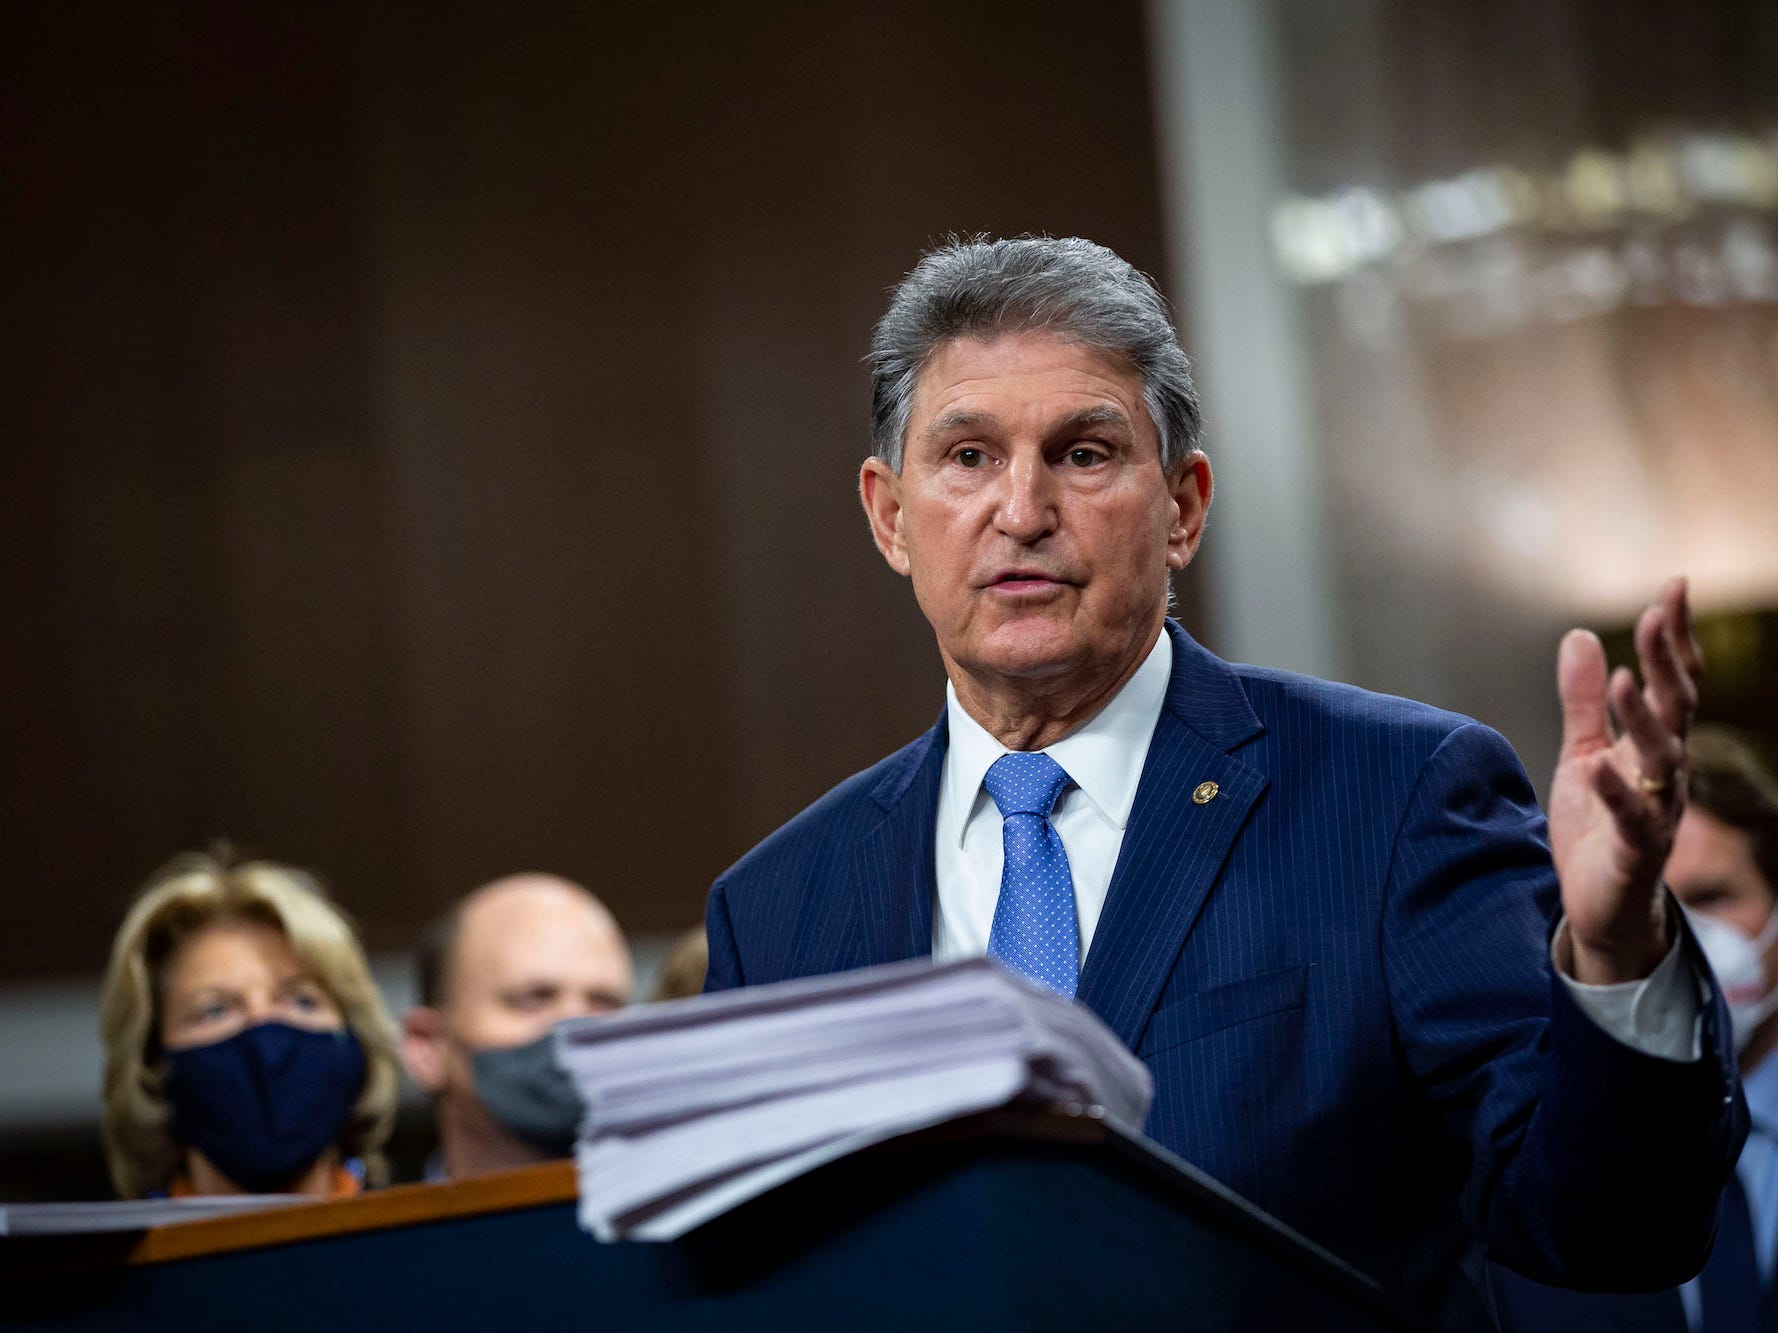 Joe Manchin poses a menace to elevating the minimal wage, despite the truth that 250,000 West Virginians would secure shut pleasure in the develop